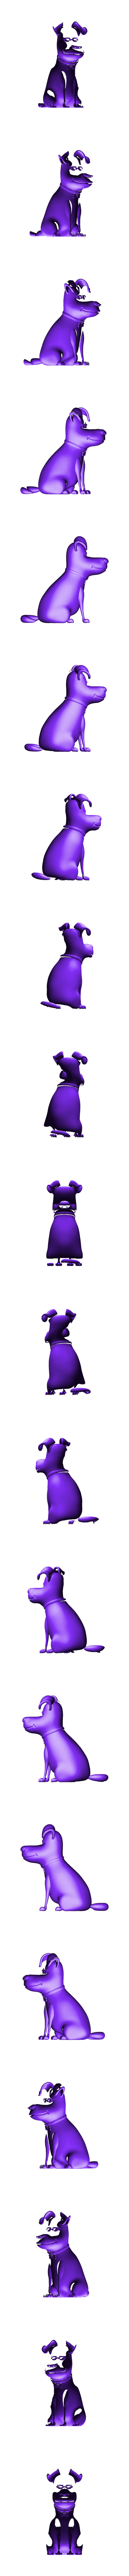 max02.stl Download STL file Secret Life of Pets: Max - Fan Art • 3D printer object, CarlCreates